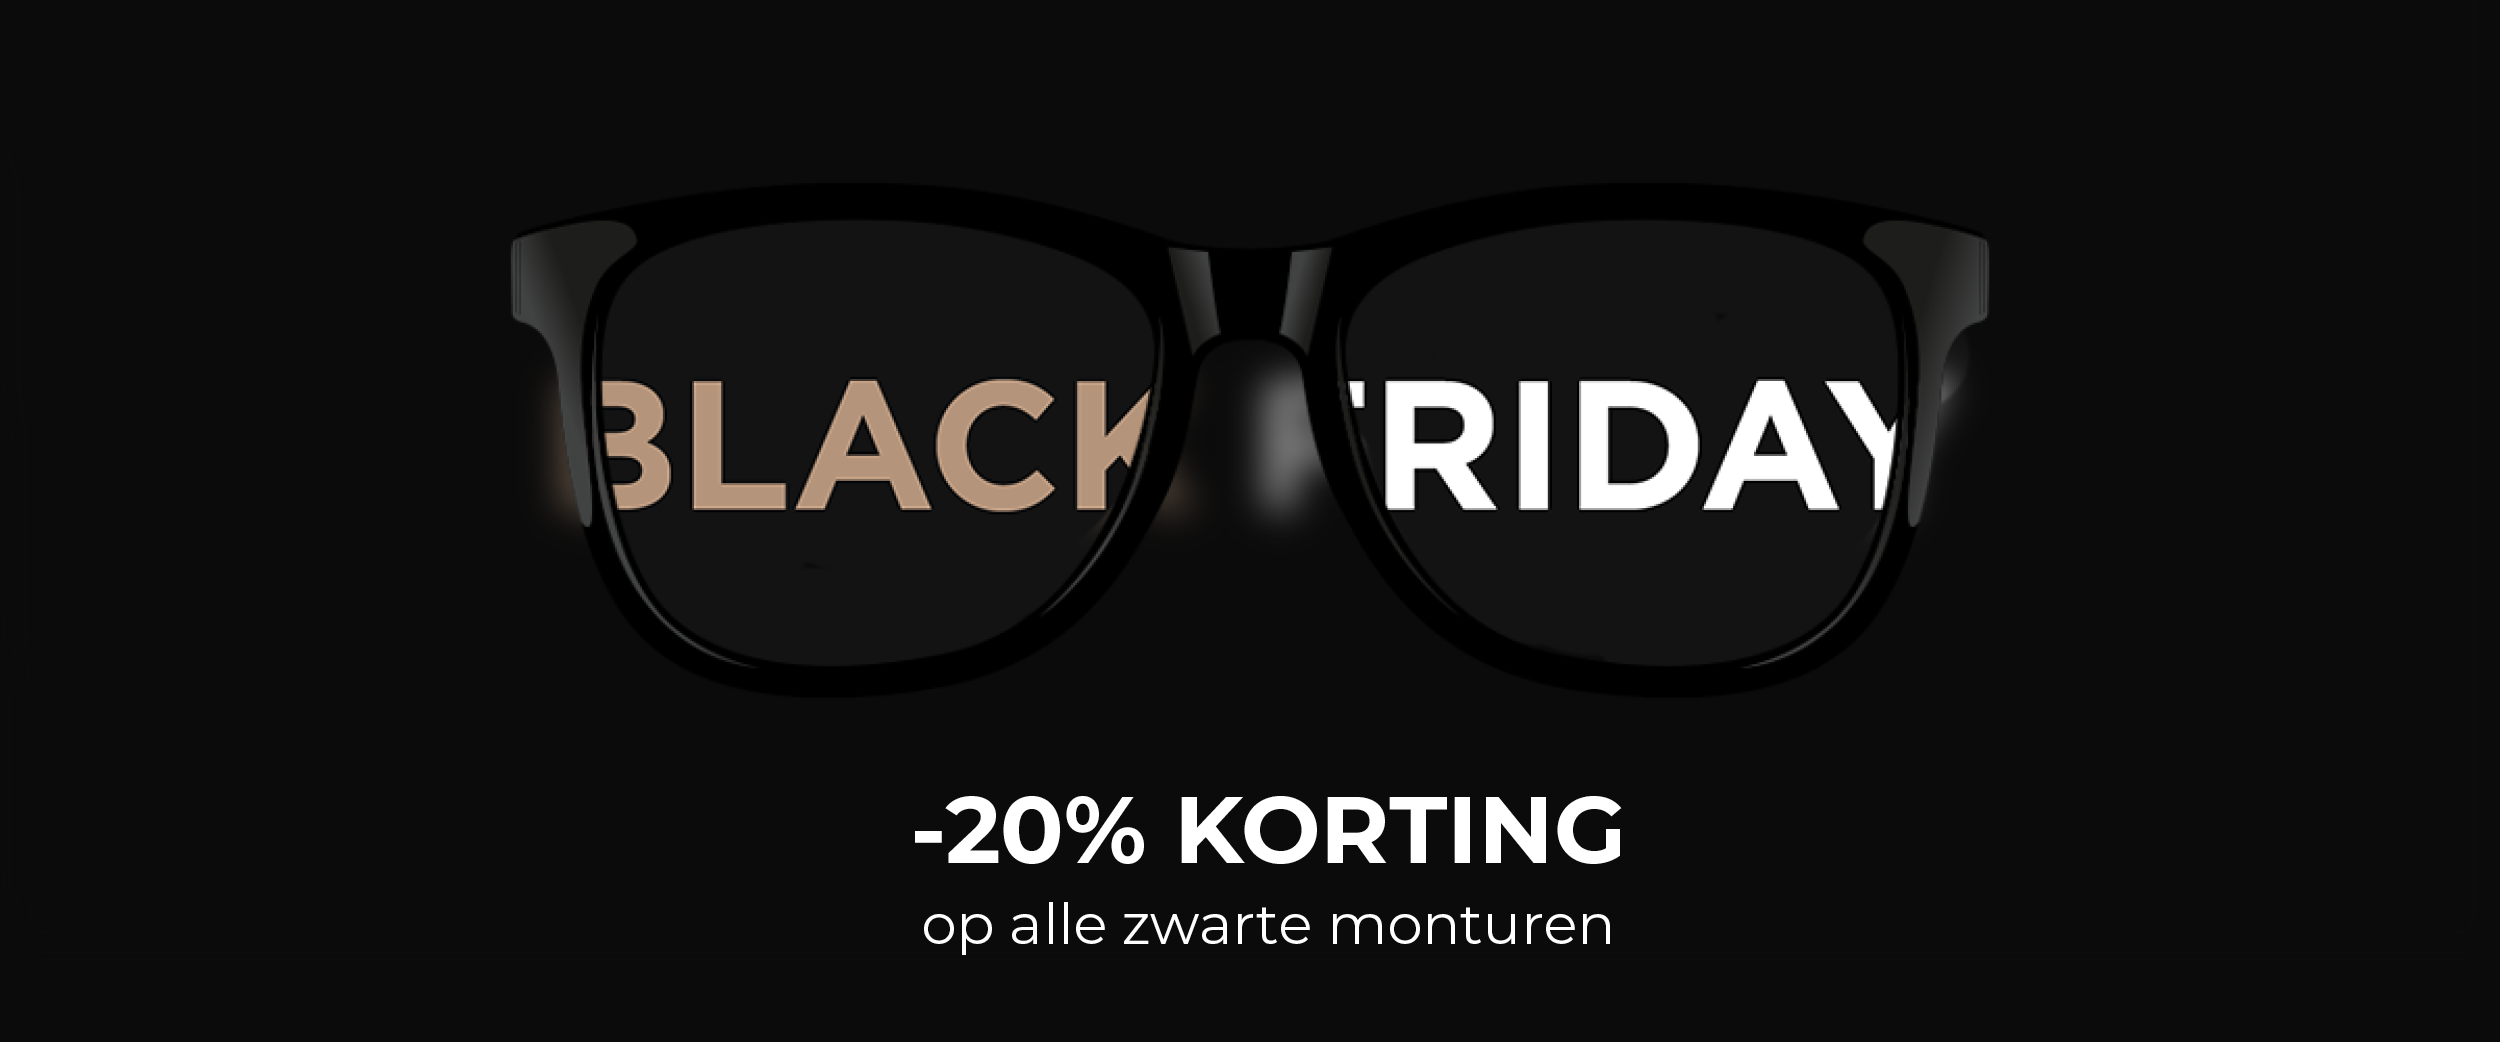 BLACK_FRIDAY_HEADER_V2.png